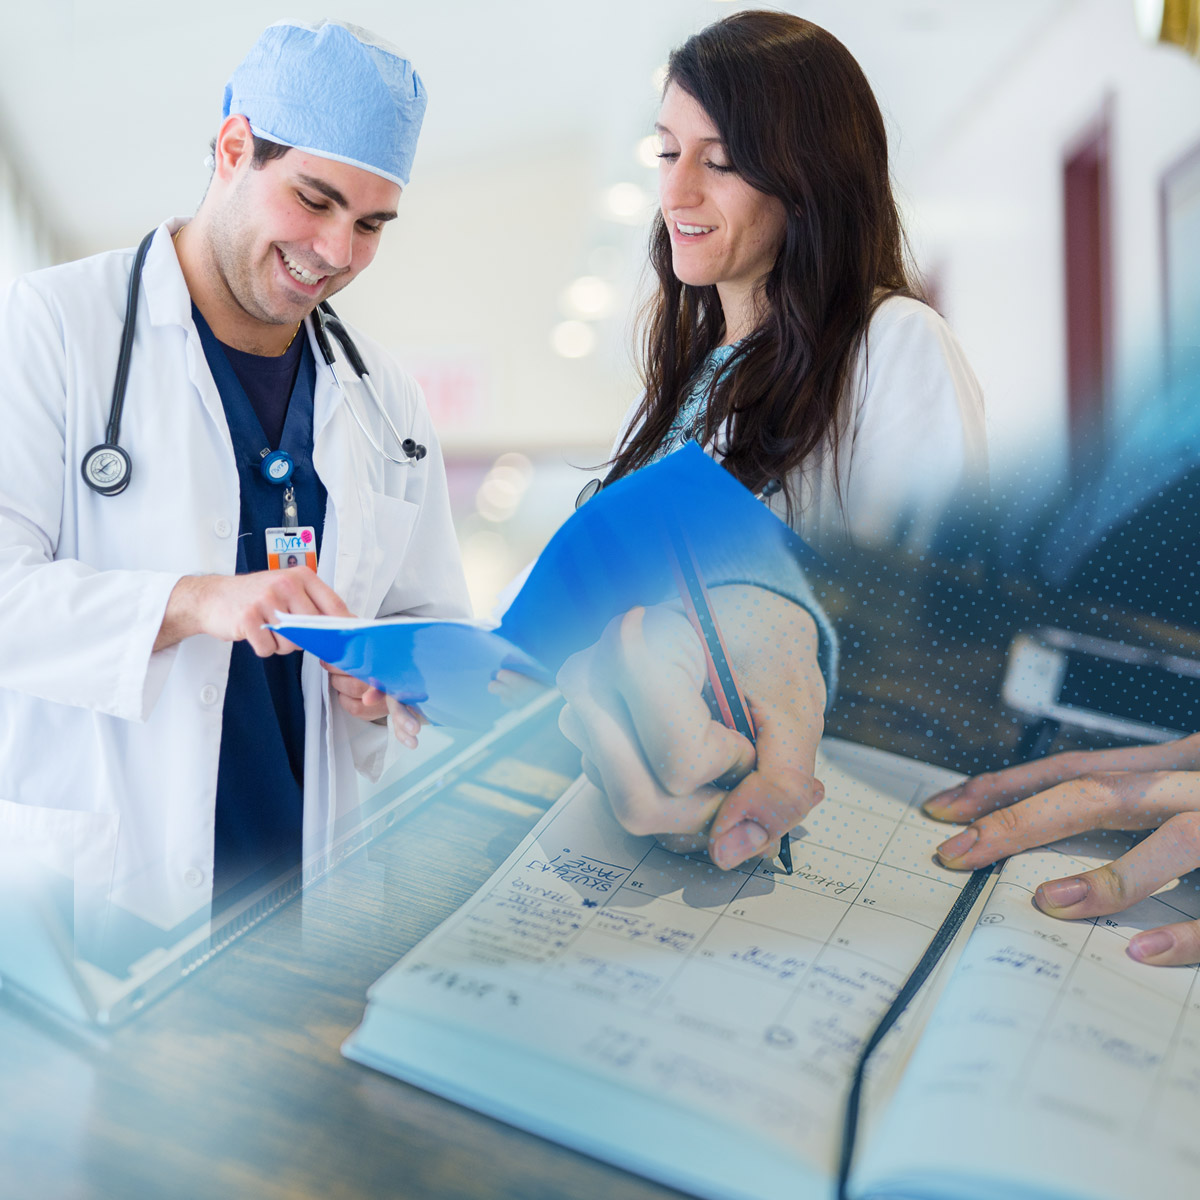 10 Things I Wish I'd Known Before Becoming a Medical Student Square